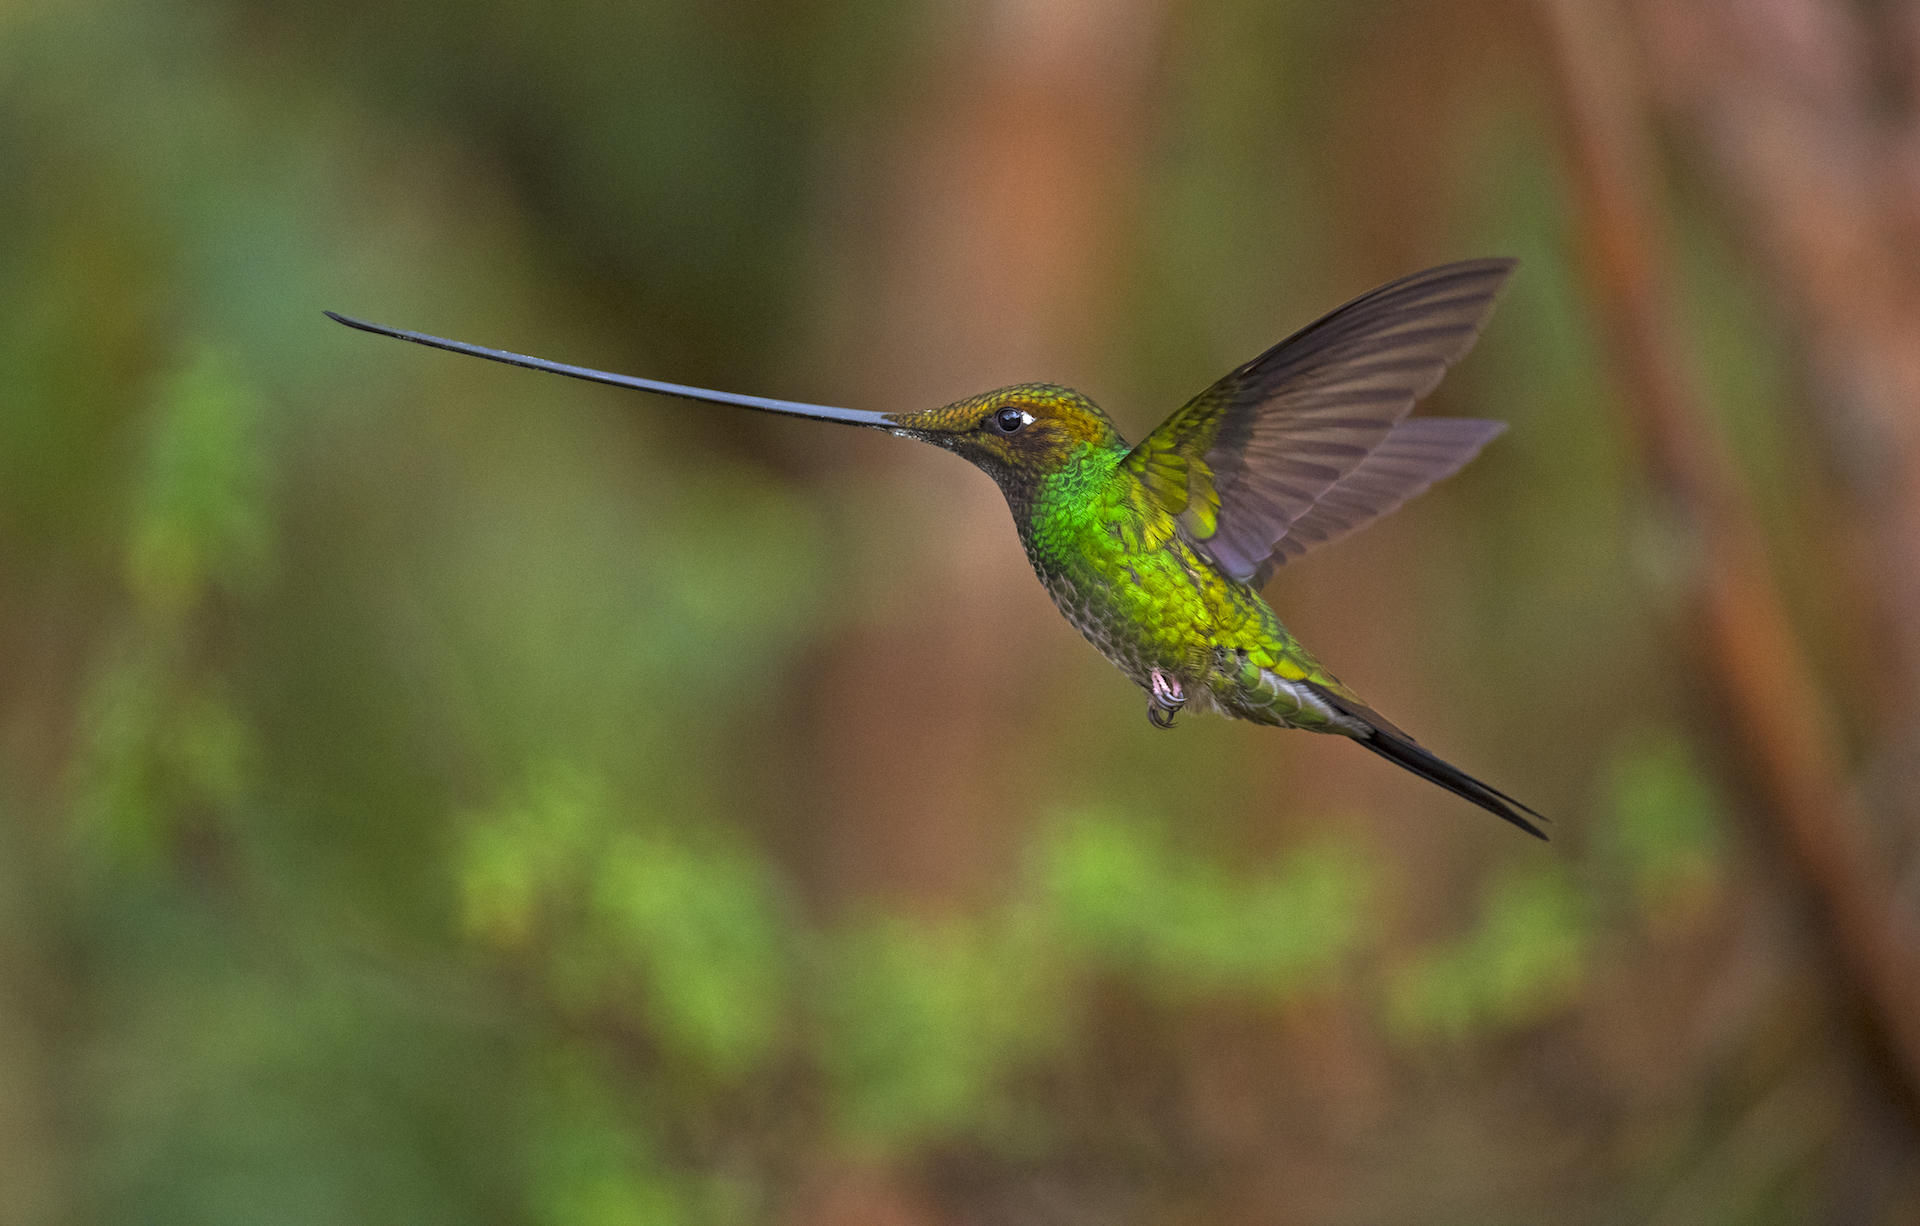 Other species, such as the sword-billed hummingbird, have evolved more obviously. This is the only bird with a bill that is longer than the length of its body, which it uses to extract nectar from flowers with long corollas.